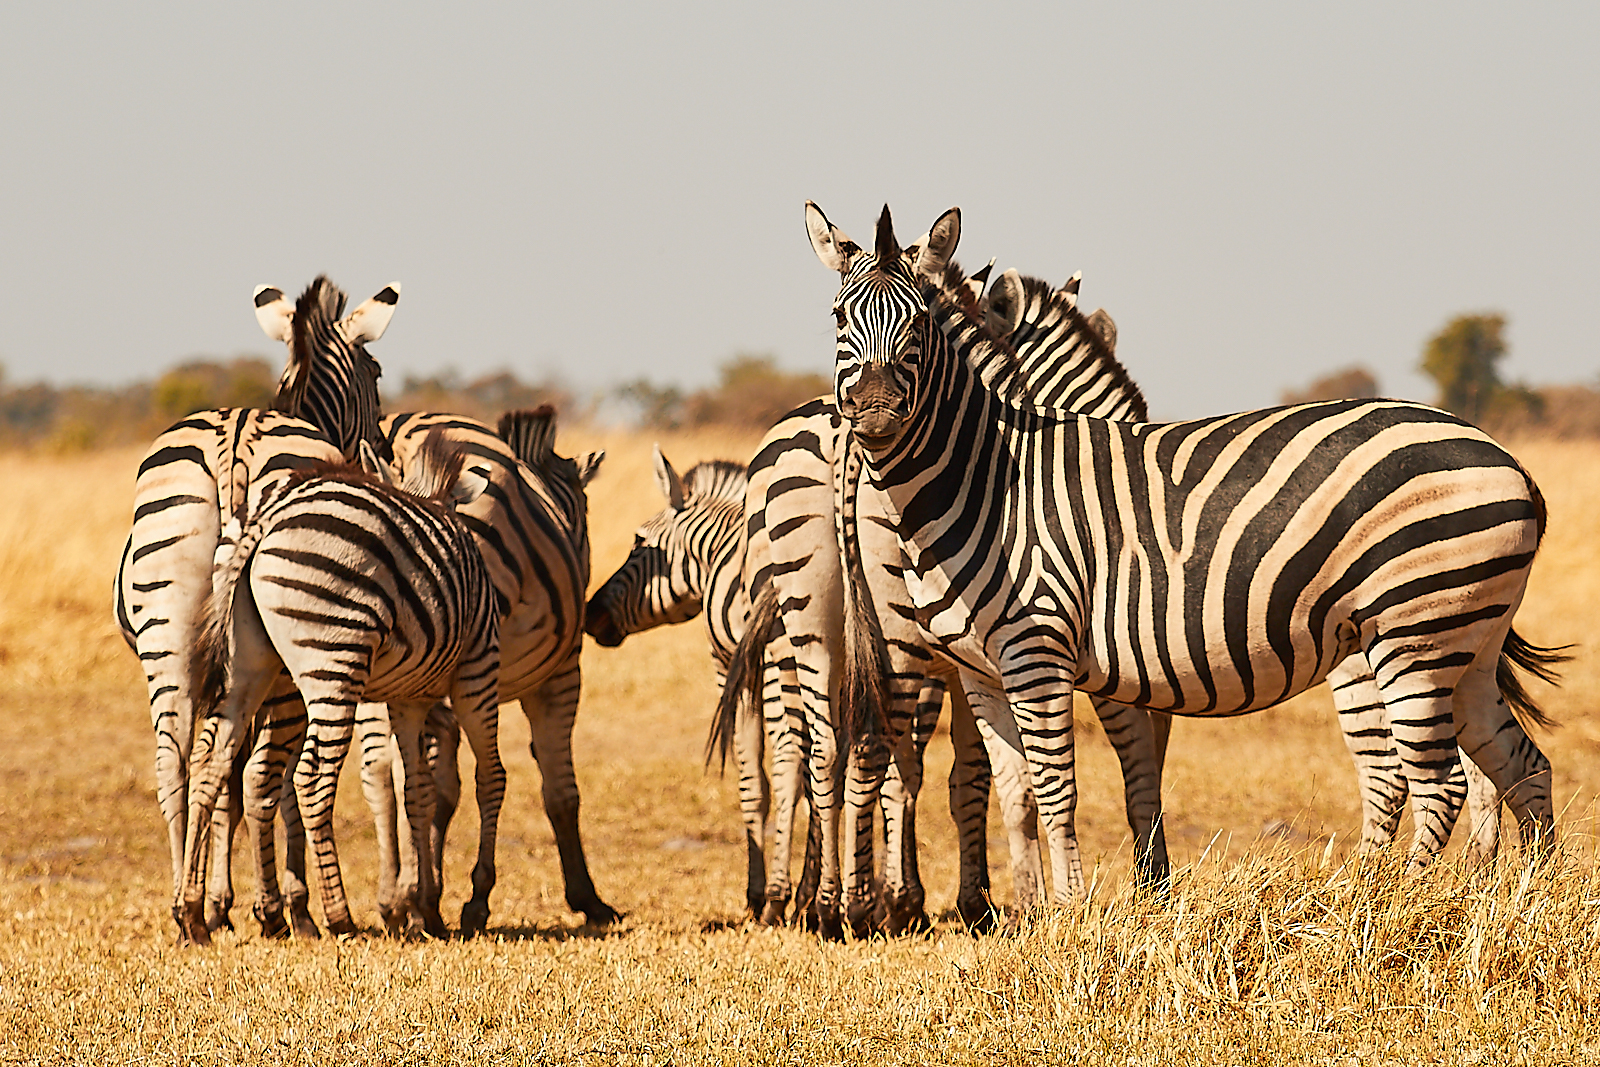 The Moremi gamedrive; wildlife at its very best!